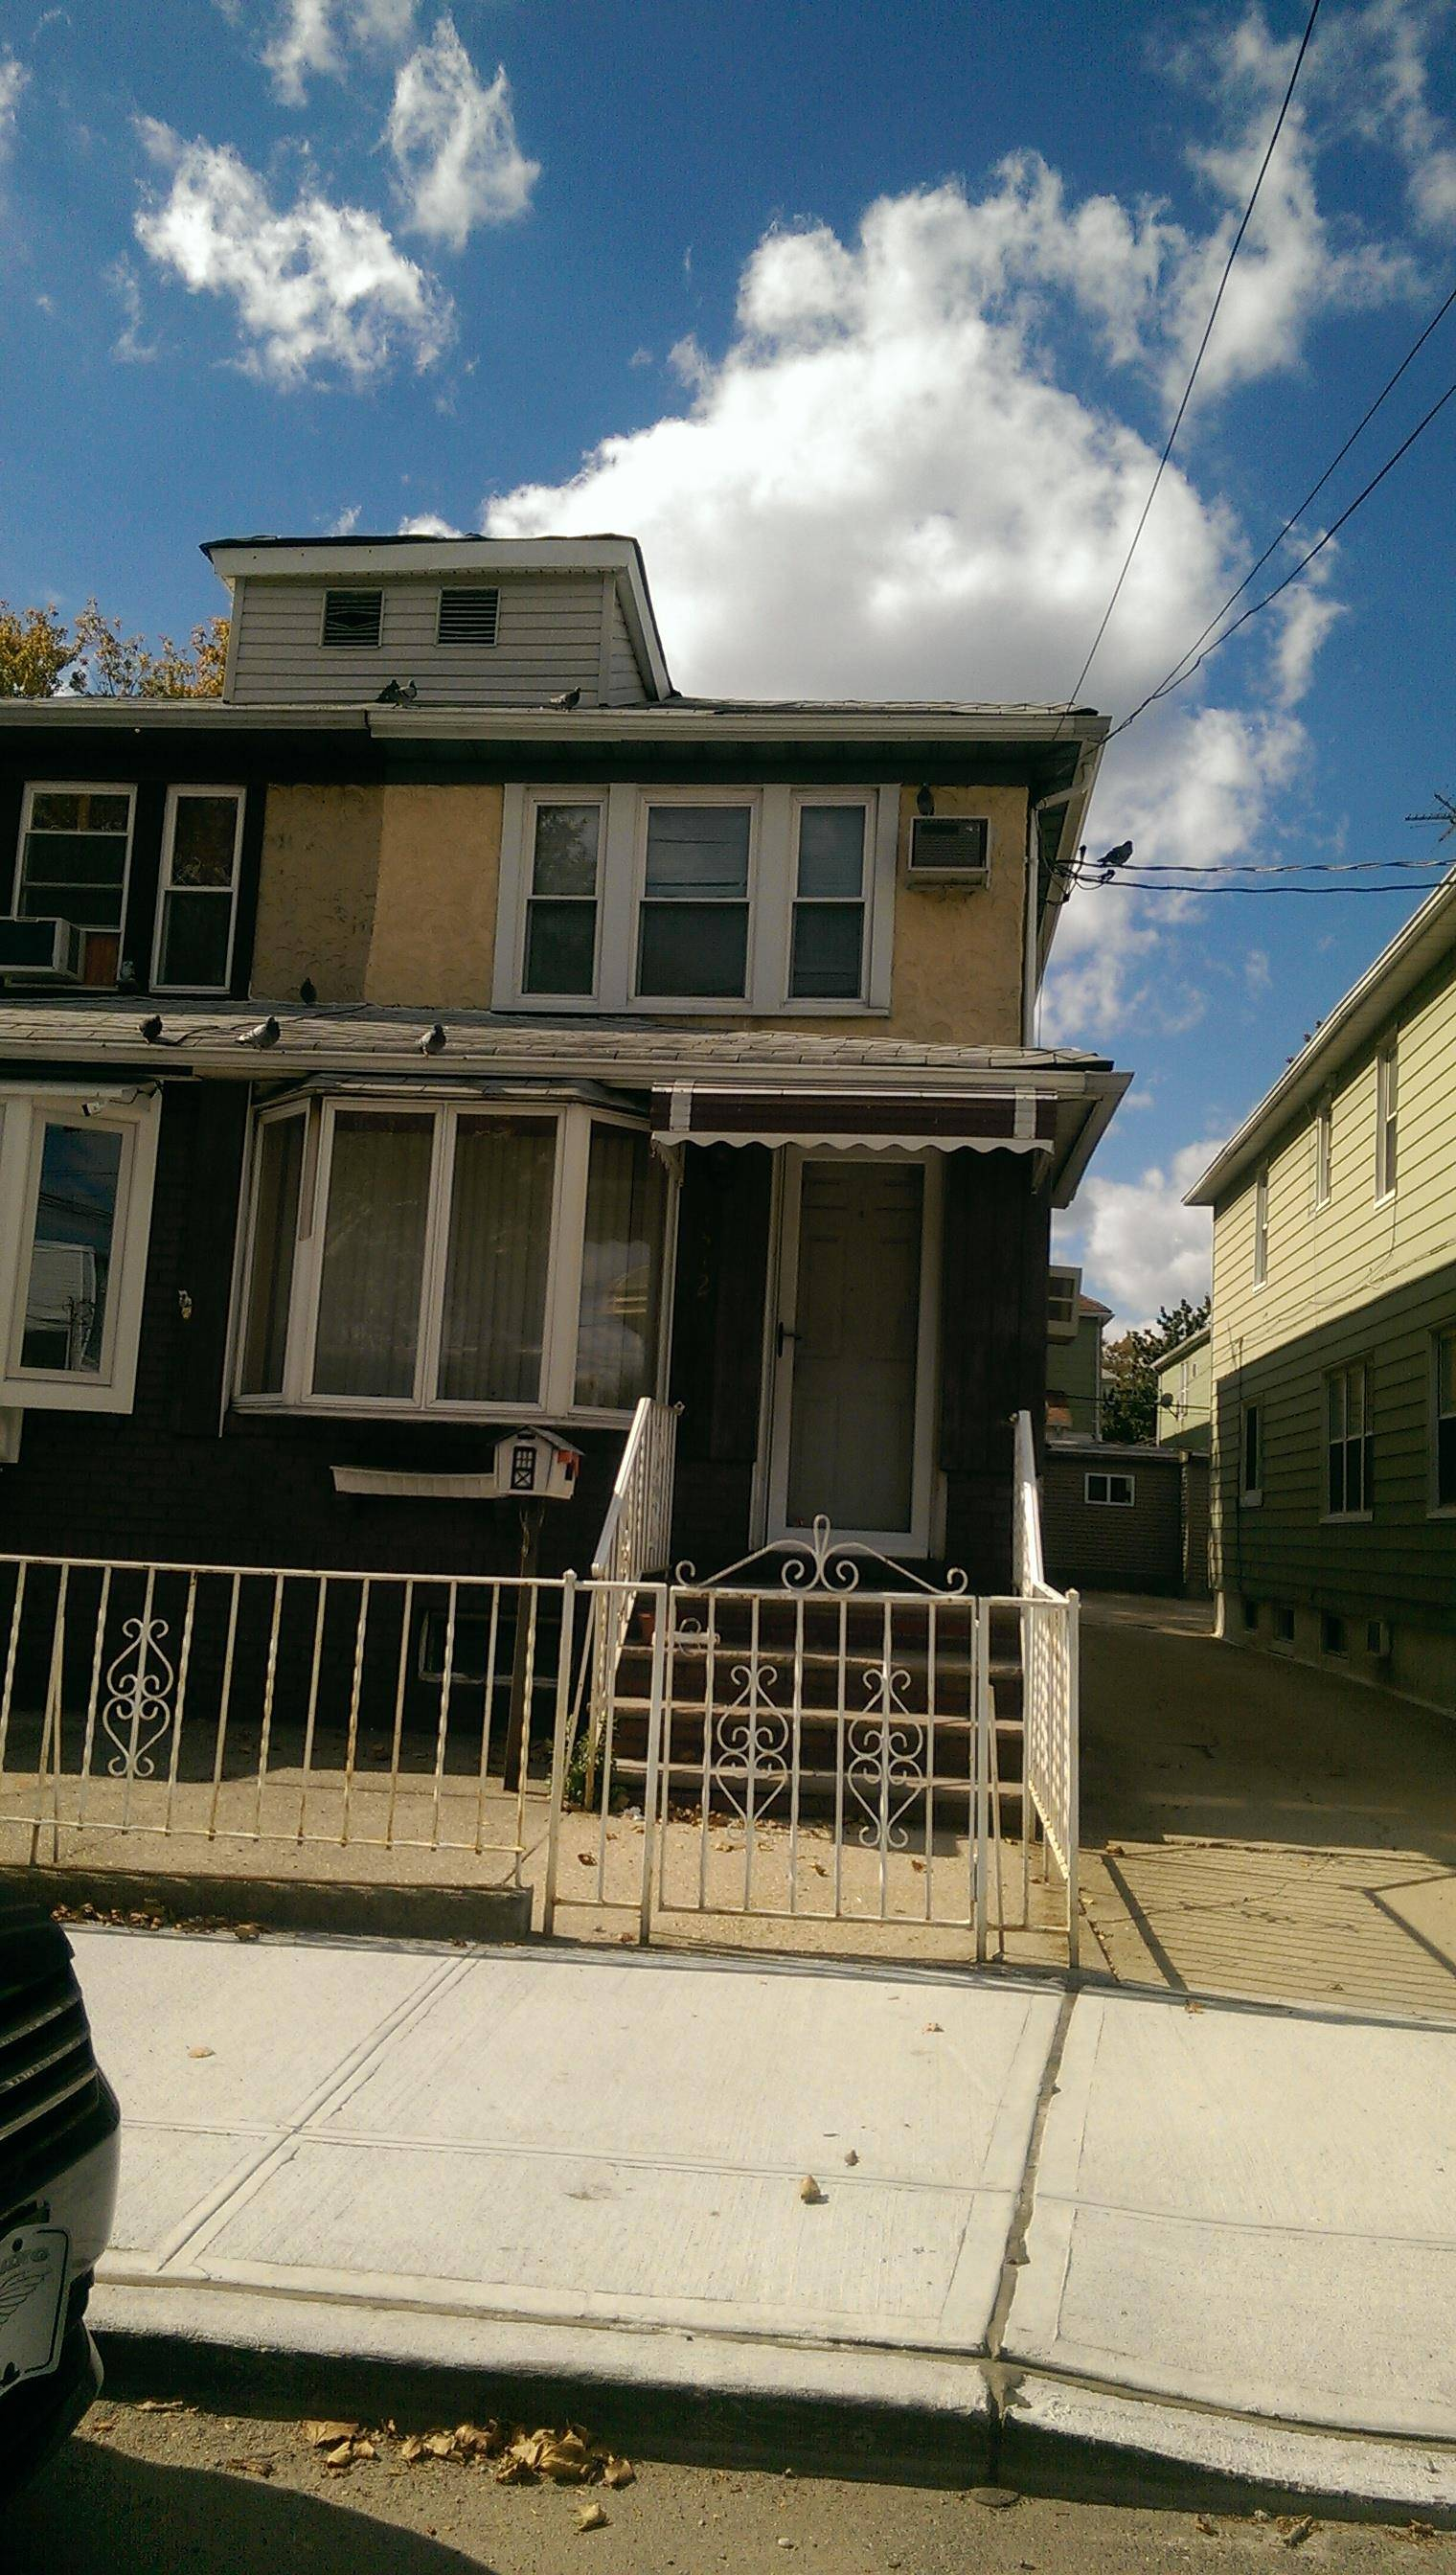 Looking for a fixer upper old mill basin s d 3 bedroo for Fixer upper houses for sale near me